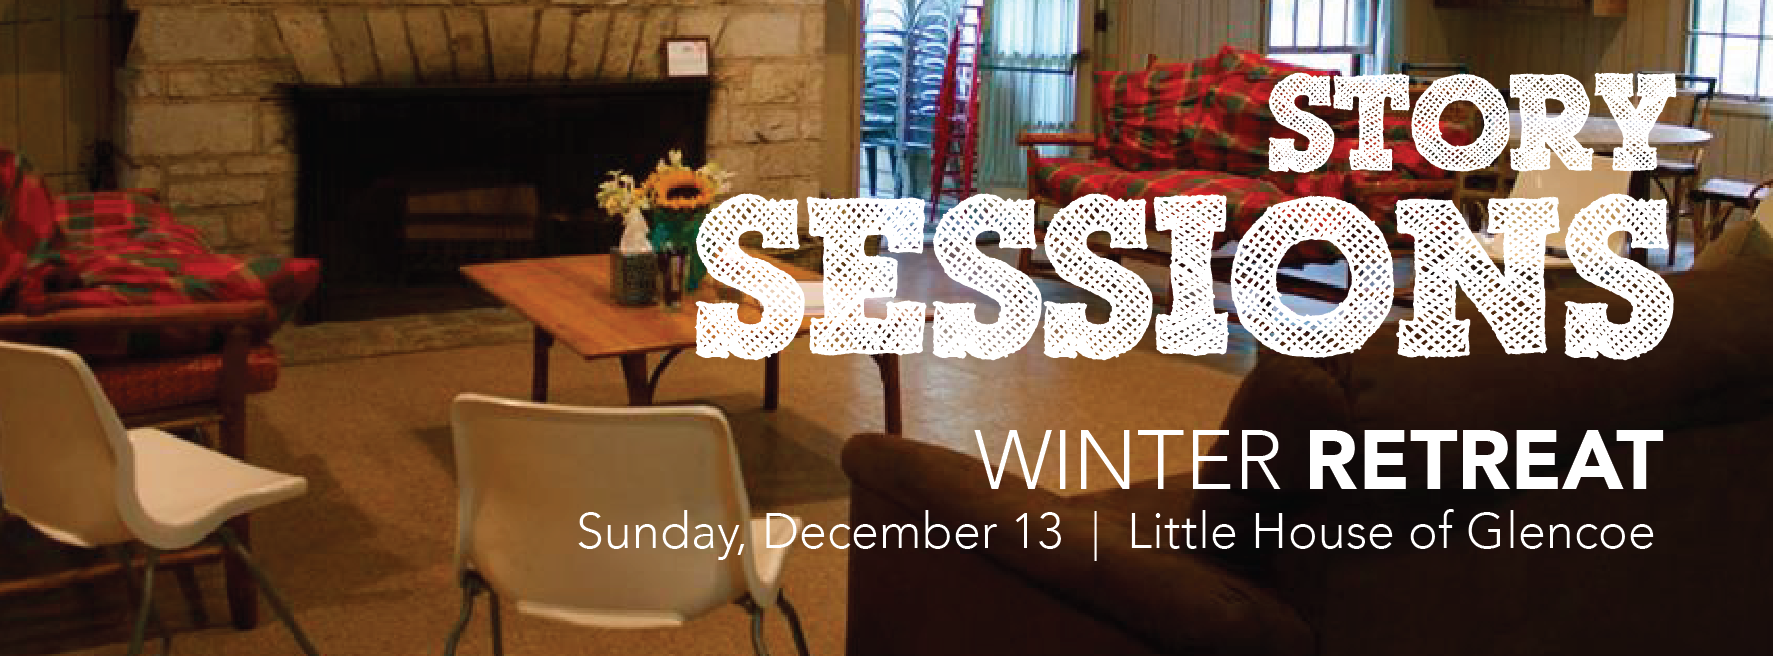 Winter Retreat is Coming Your Way!